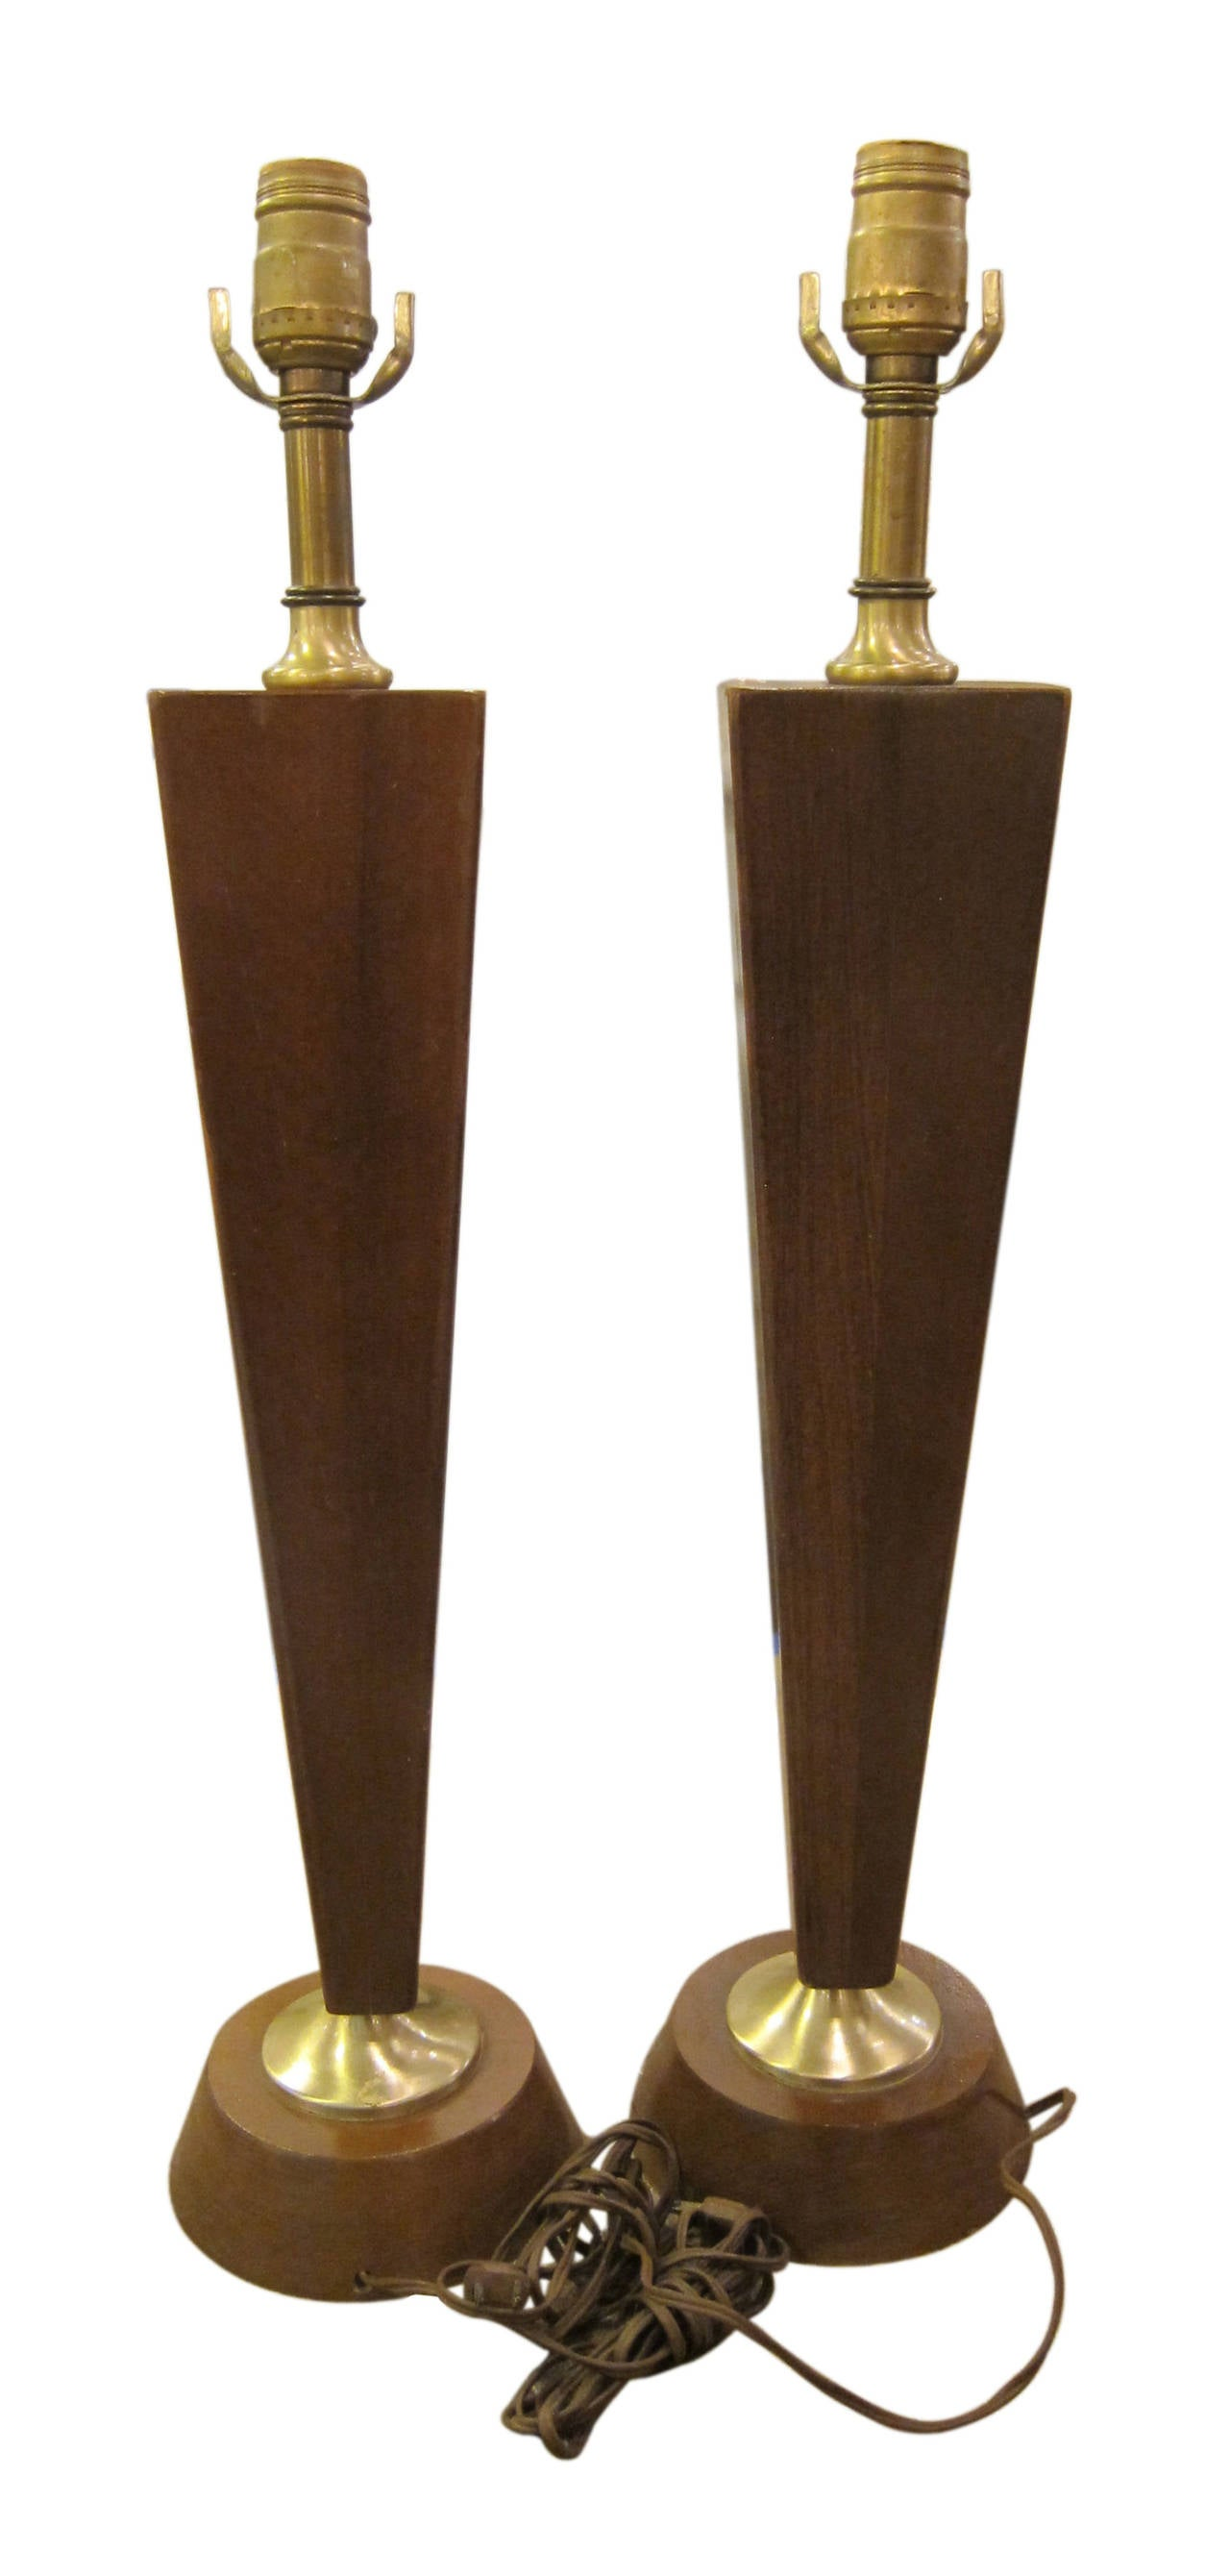 wood and glass mid century modern table lamps for sale at 1stdibs